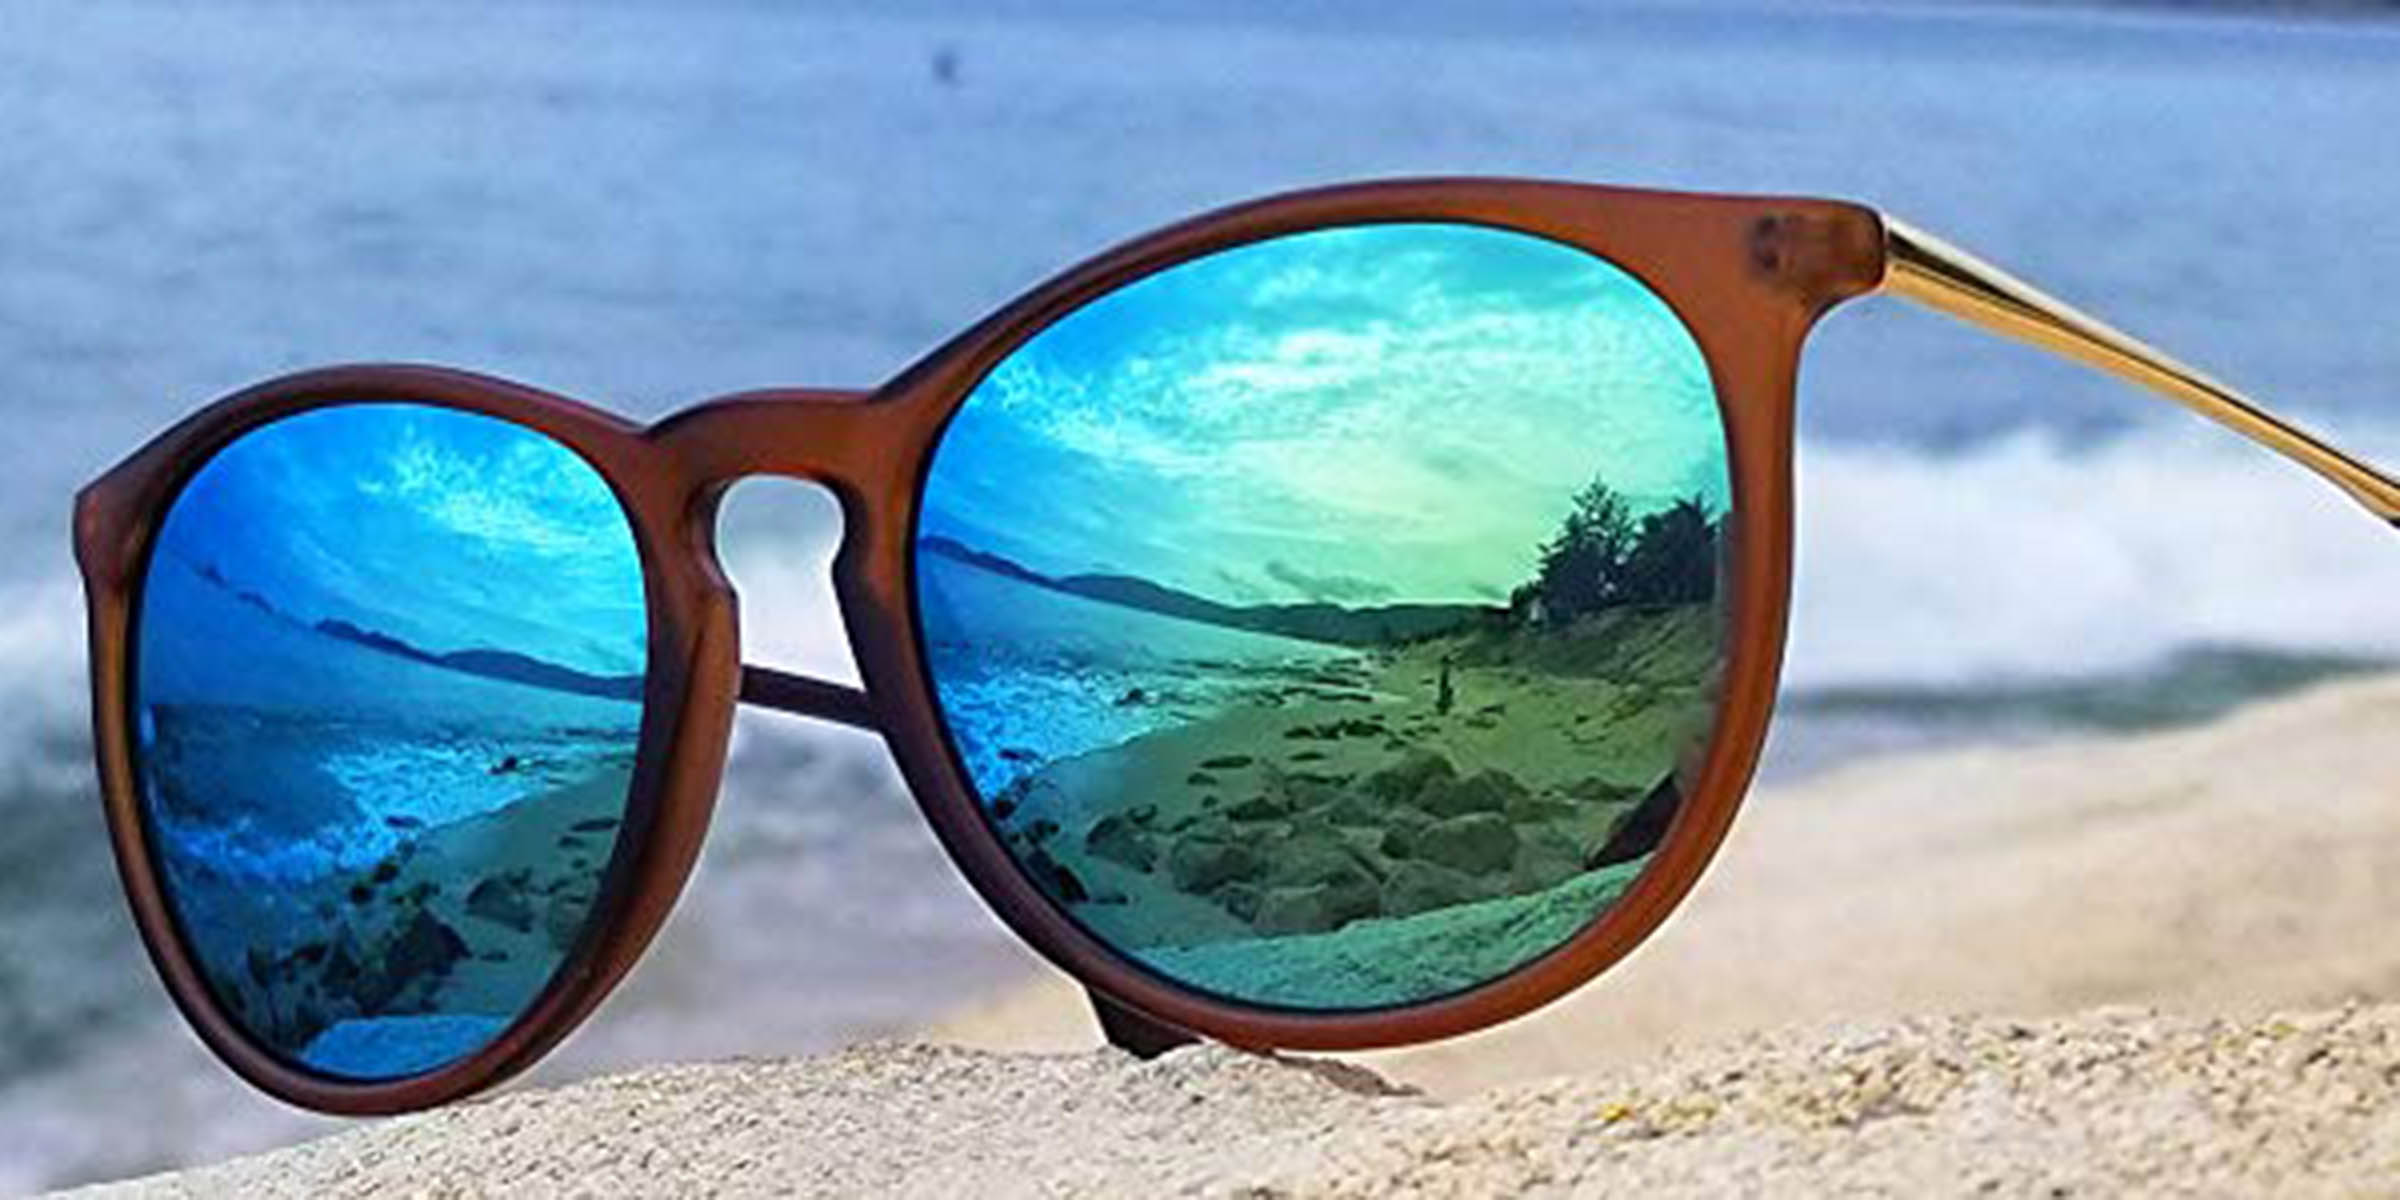 c0f59afc4df Sales of these  16 sunglasses have doubled over the past 24 hours